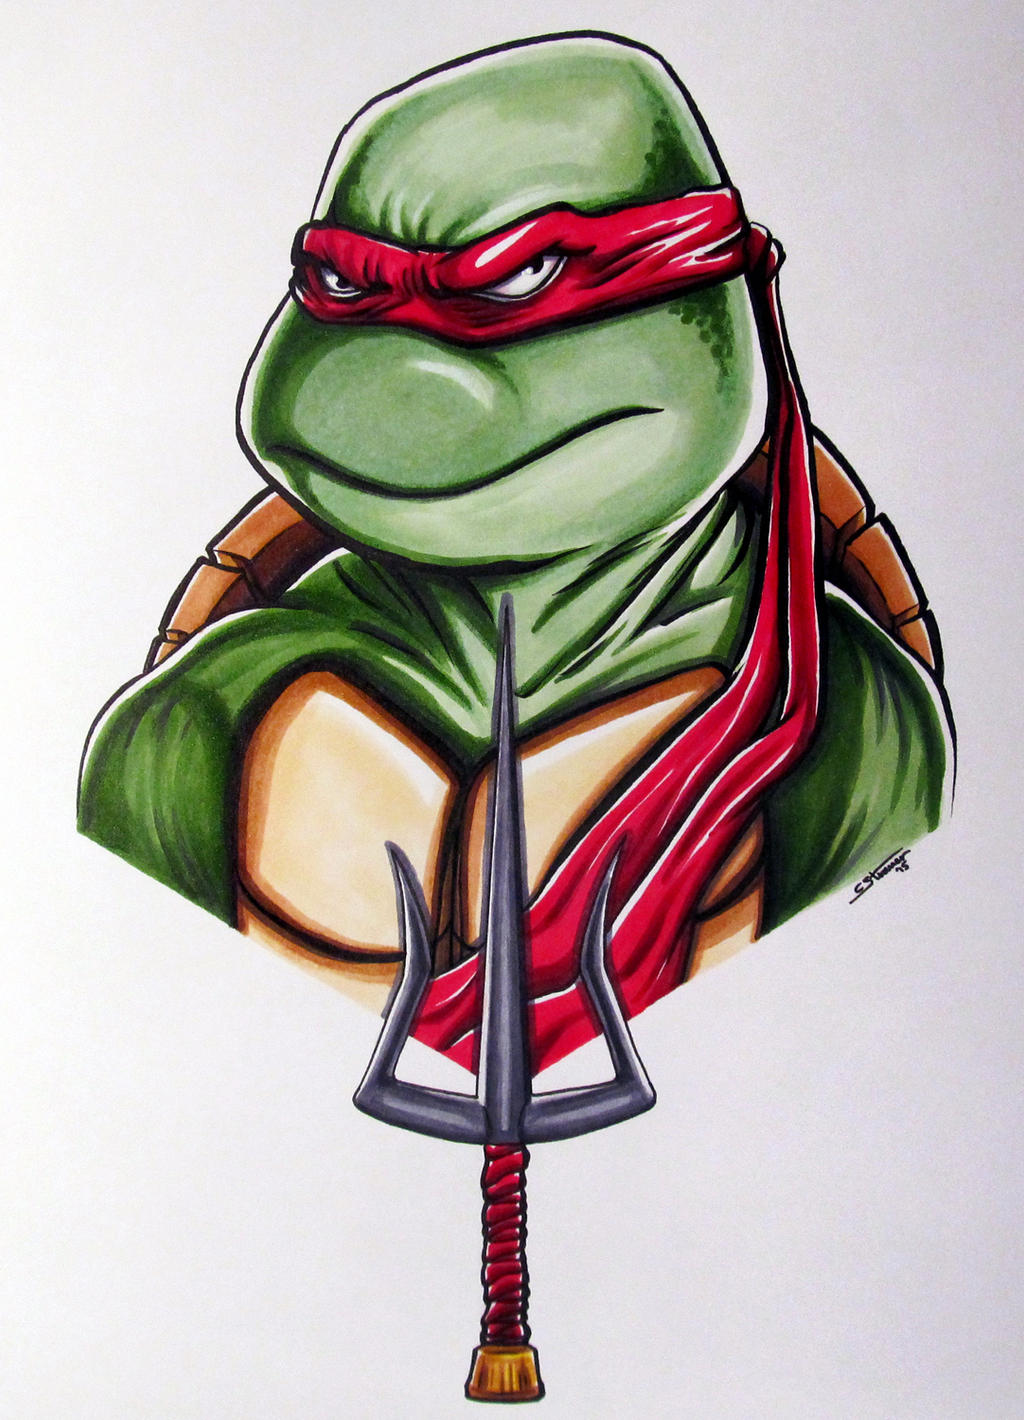 Raphael Drawing - TMNT Fan Art by LethalChris on DeviantArt